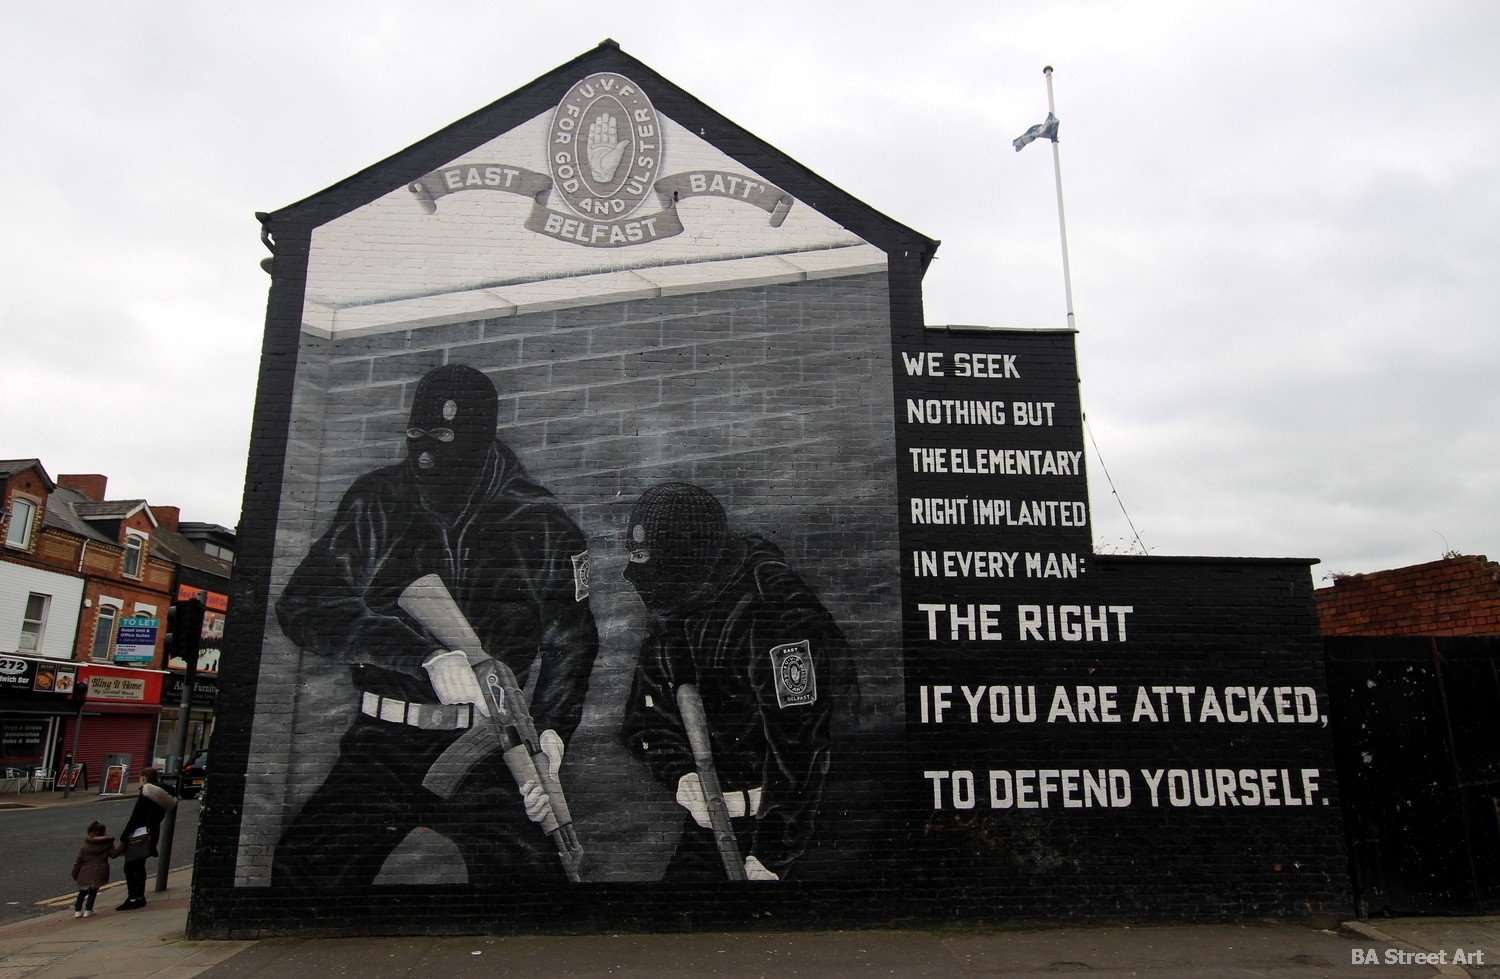 belfast protestant mural political paramilitary UVF east battalion tour ulster